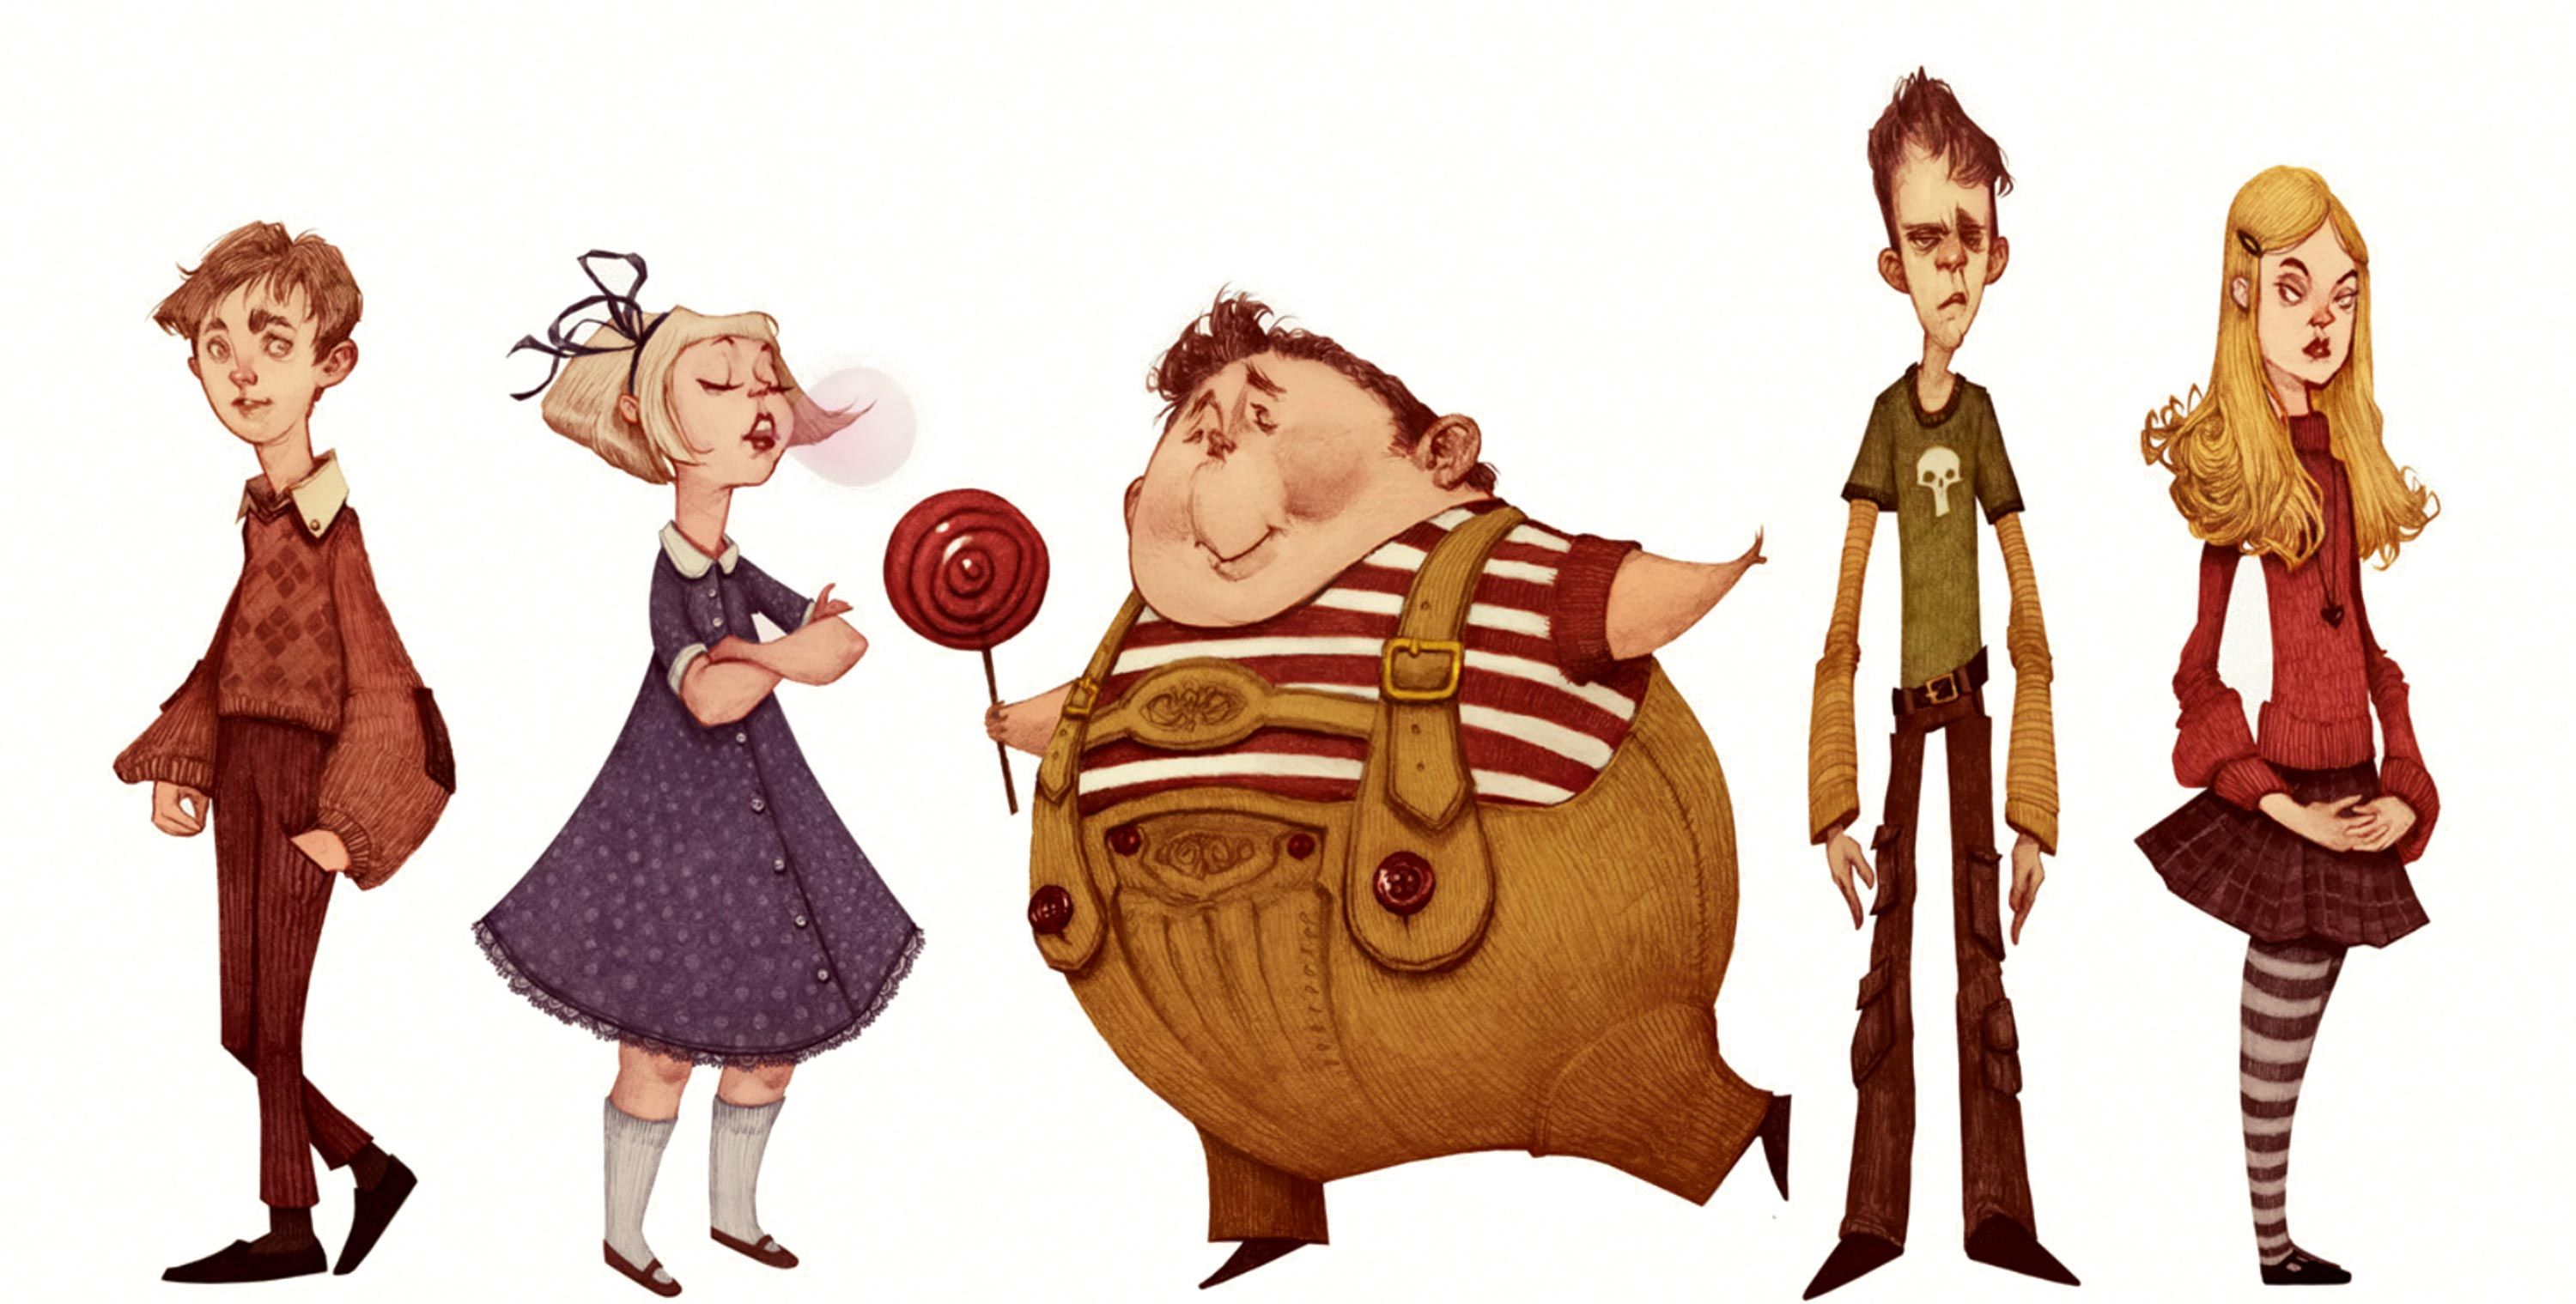 Original character designs for Charlie And The Chocolate Factory